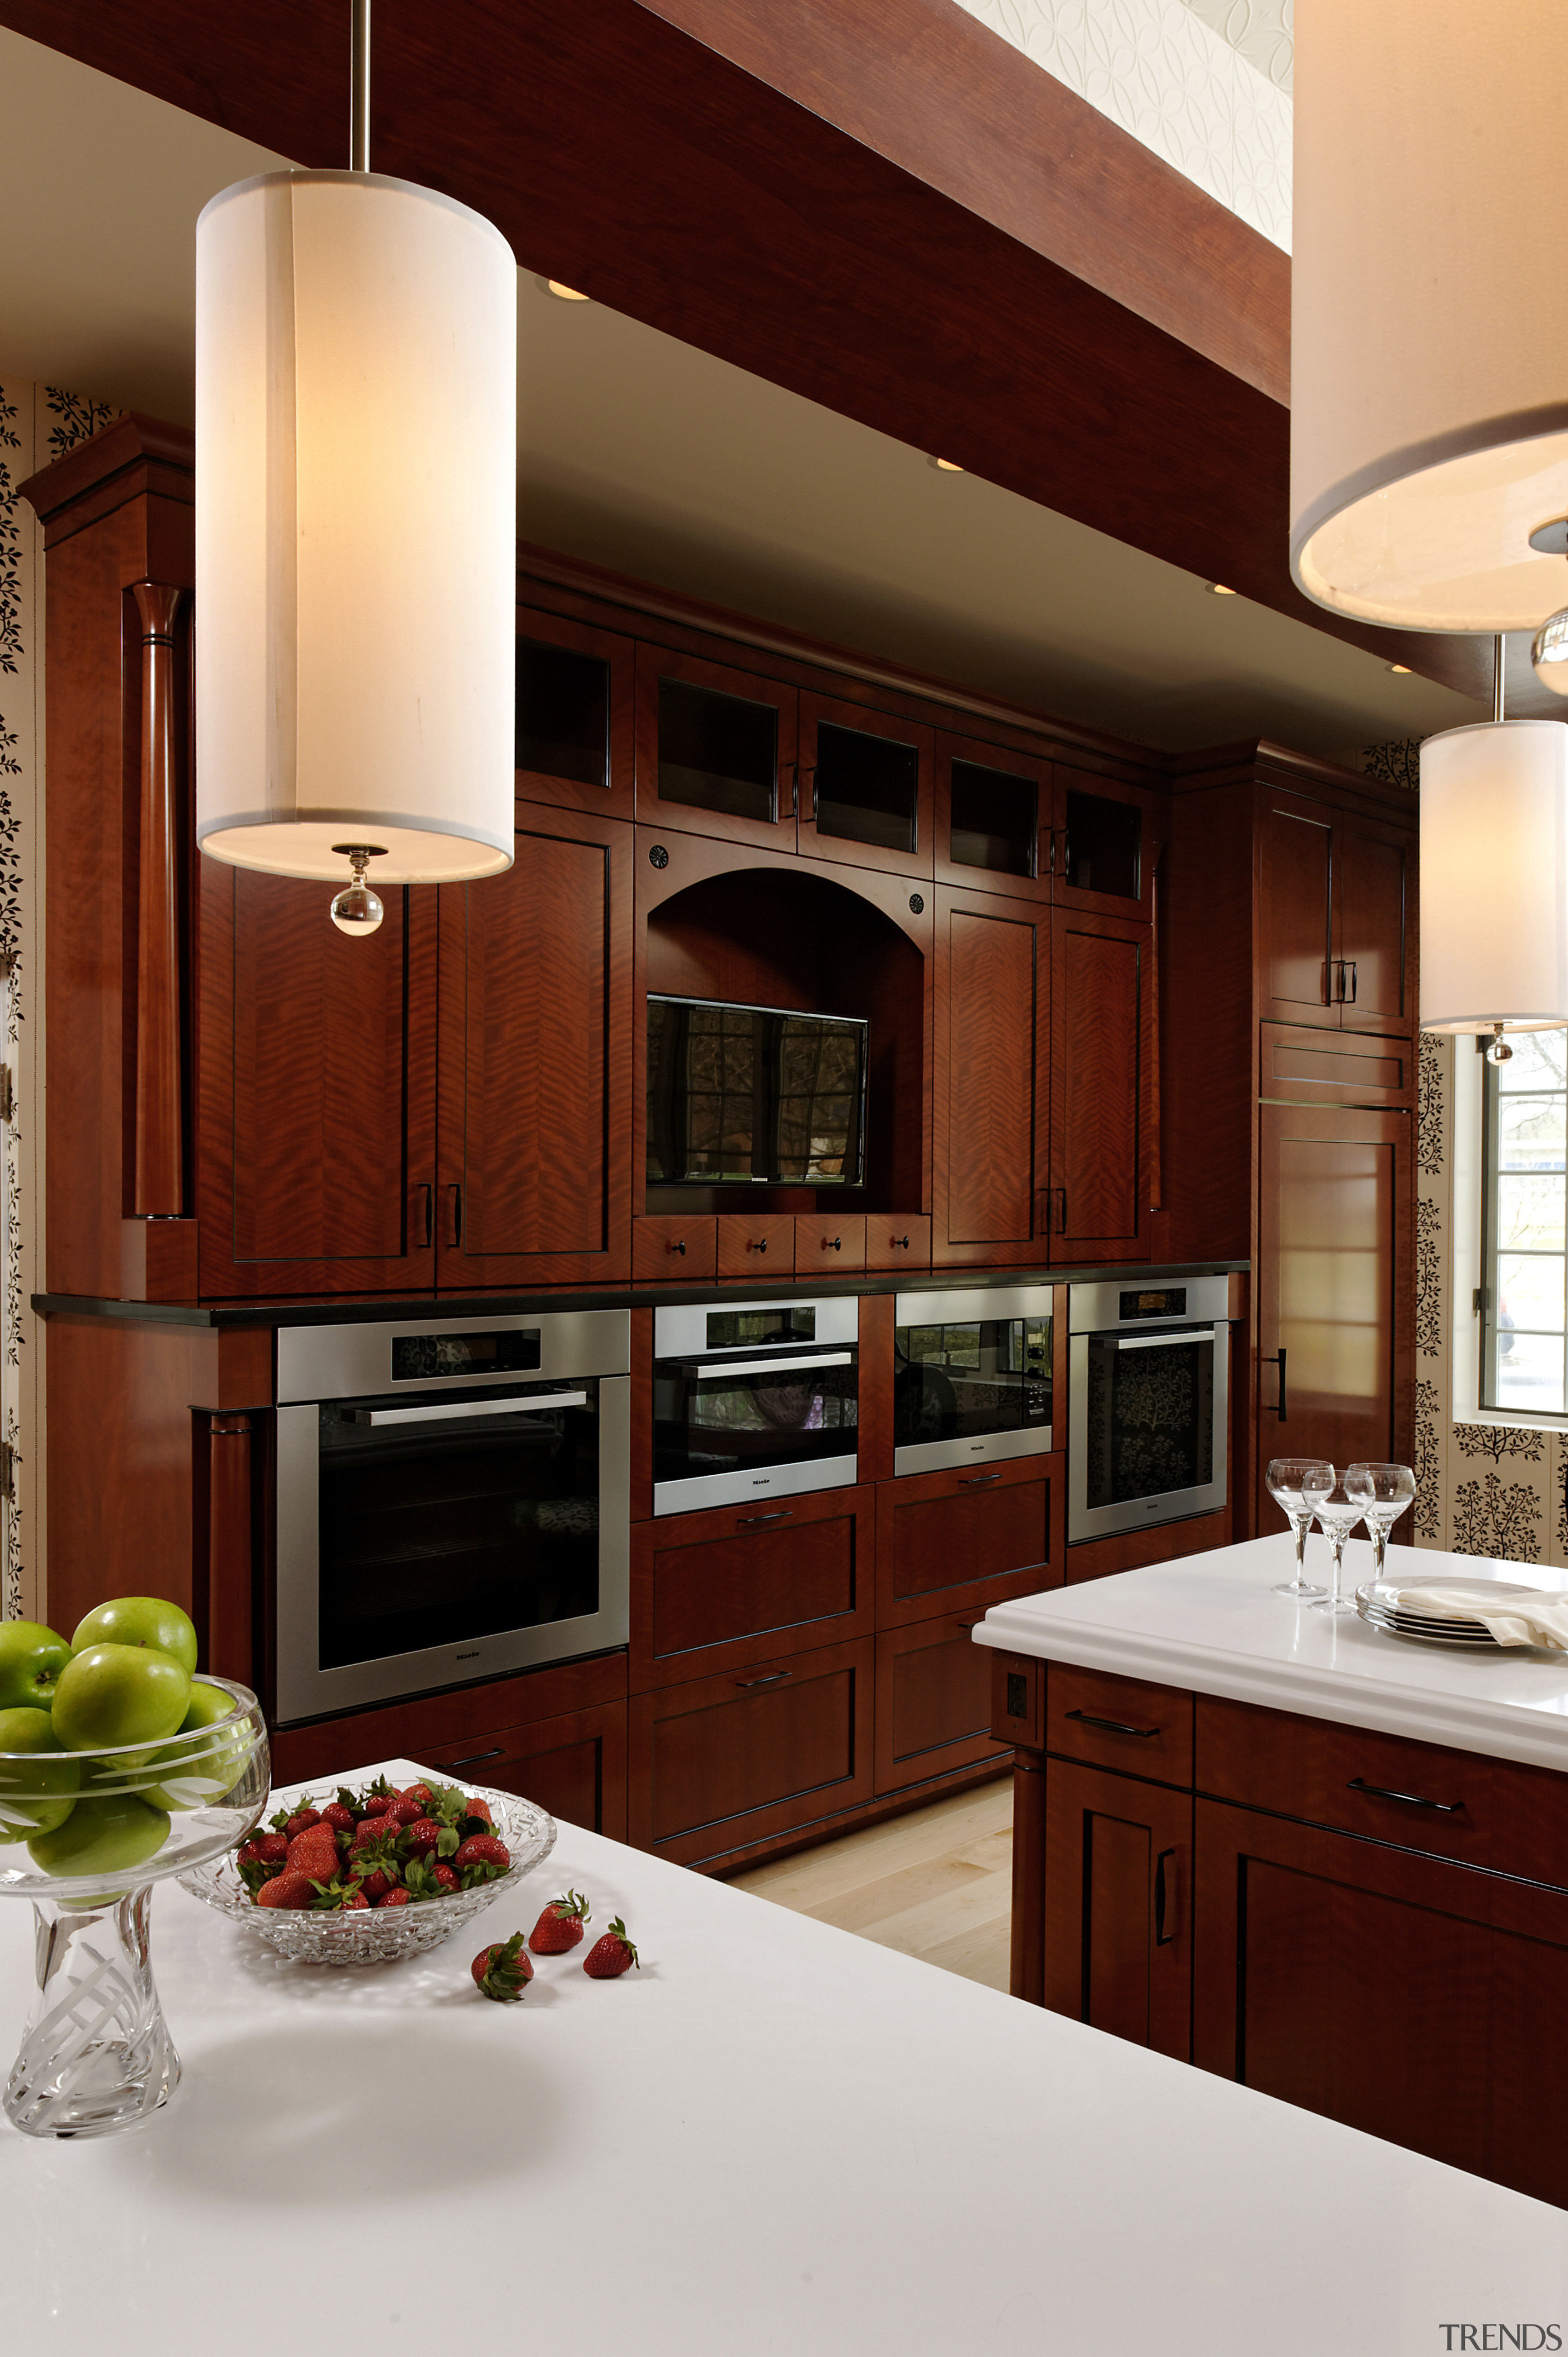 A wall of cabinetry contains aTV and several cabinetry, countertop, cuisine classique, home, interior design, kitchen, room, red